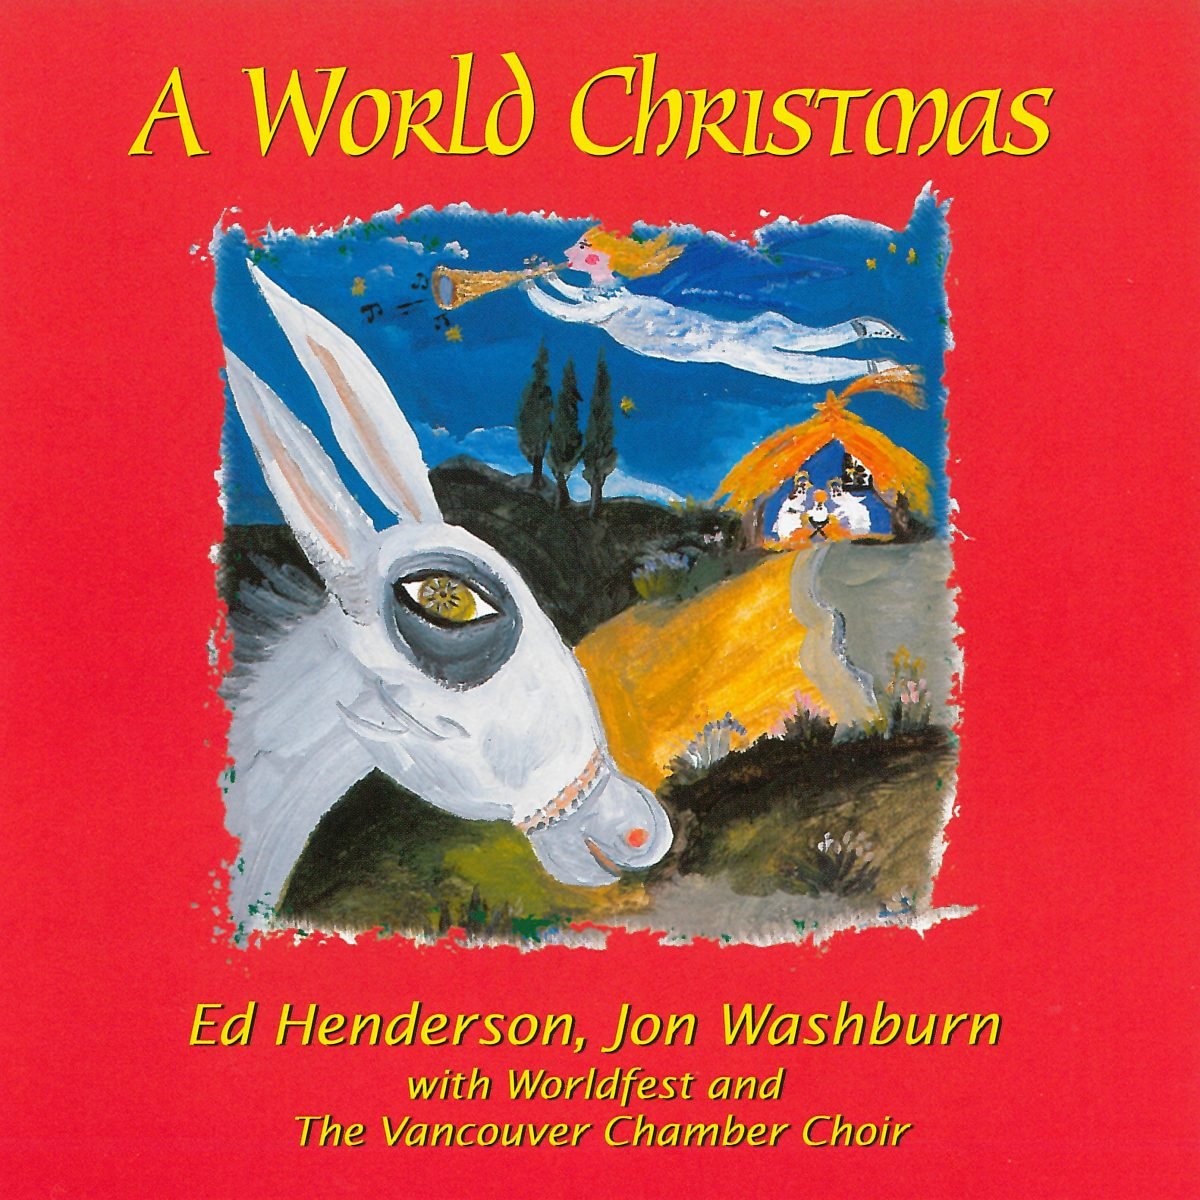 A World Christmas